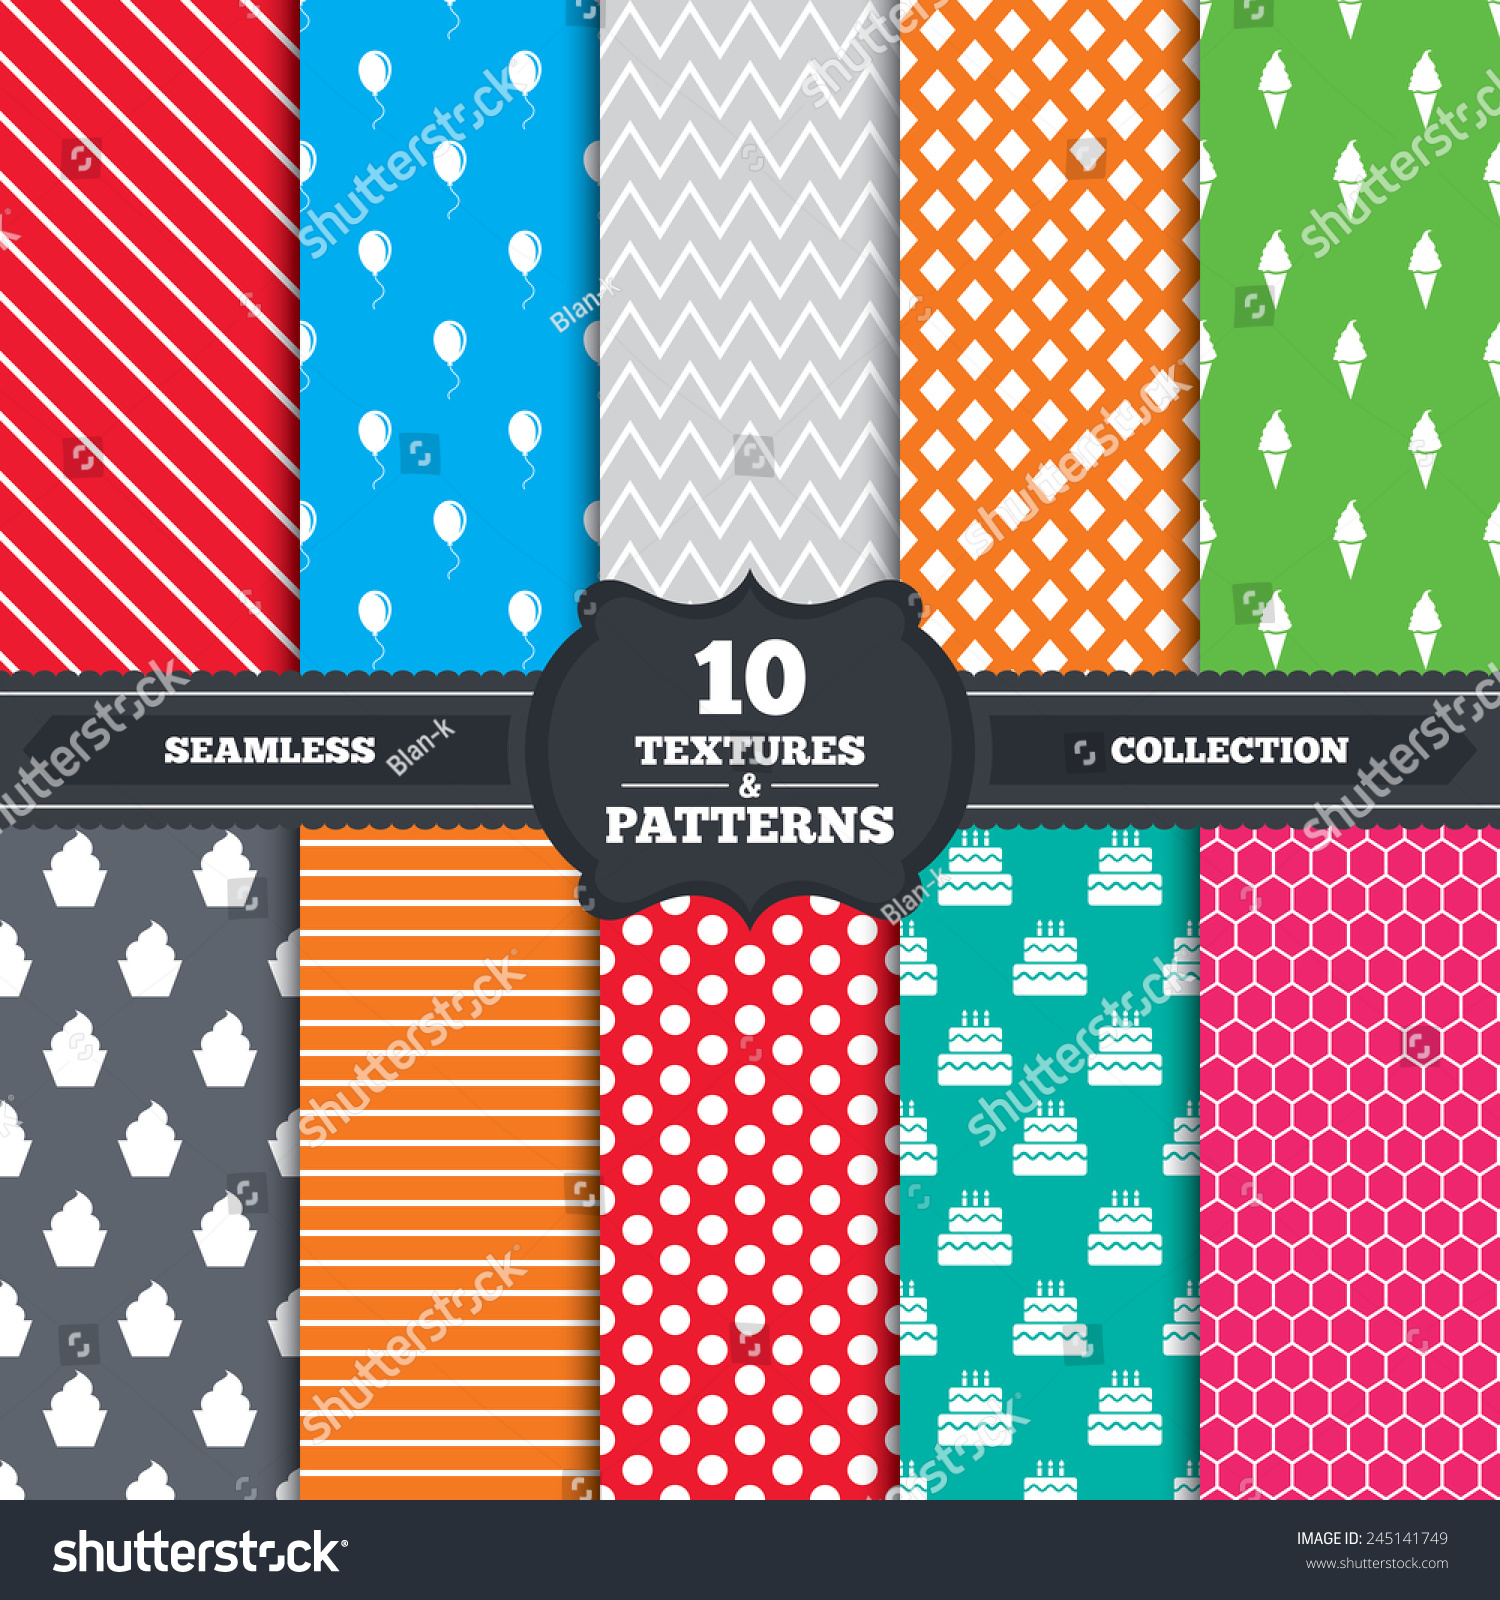 Seamless Wallpaper Pattern With Ice Cream Icons Stock: Seamless Patterns And Textures. Birthday Party Icons. Cake